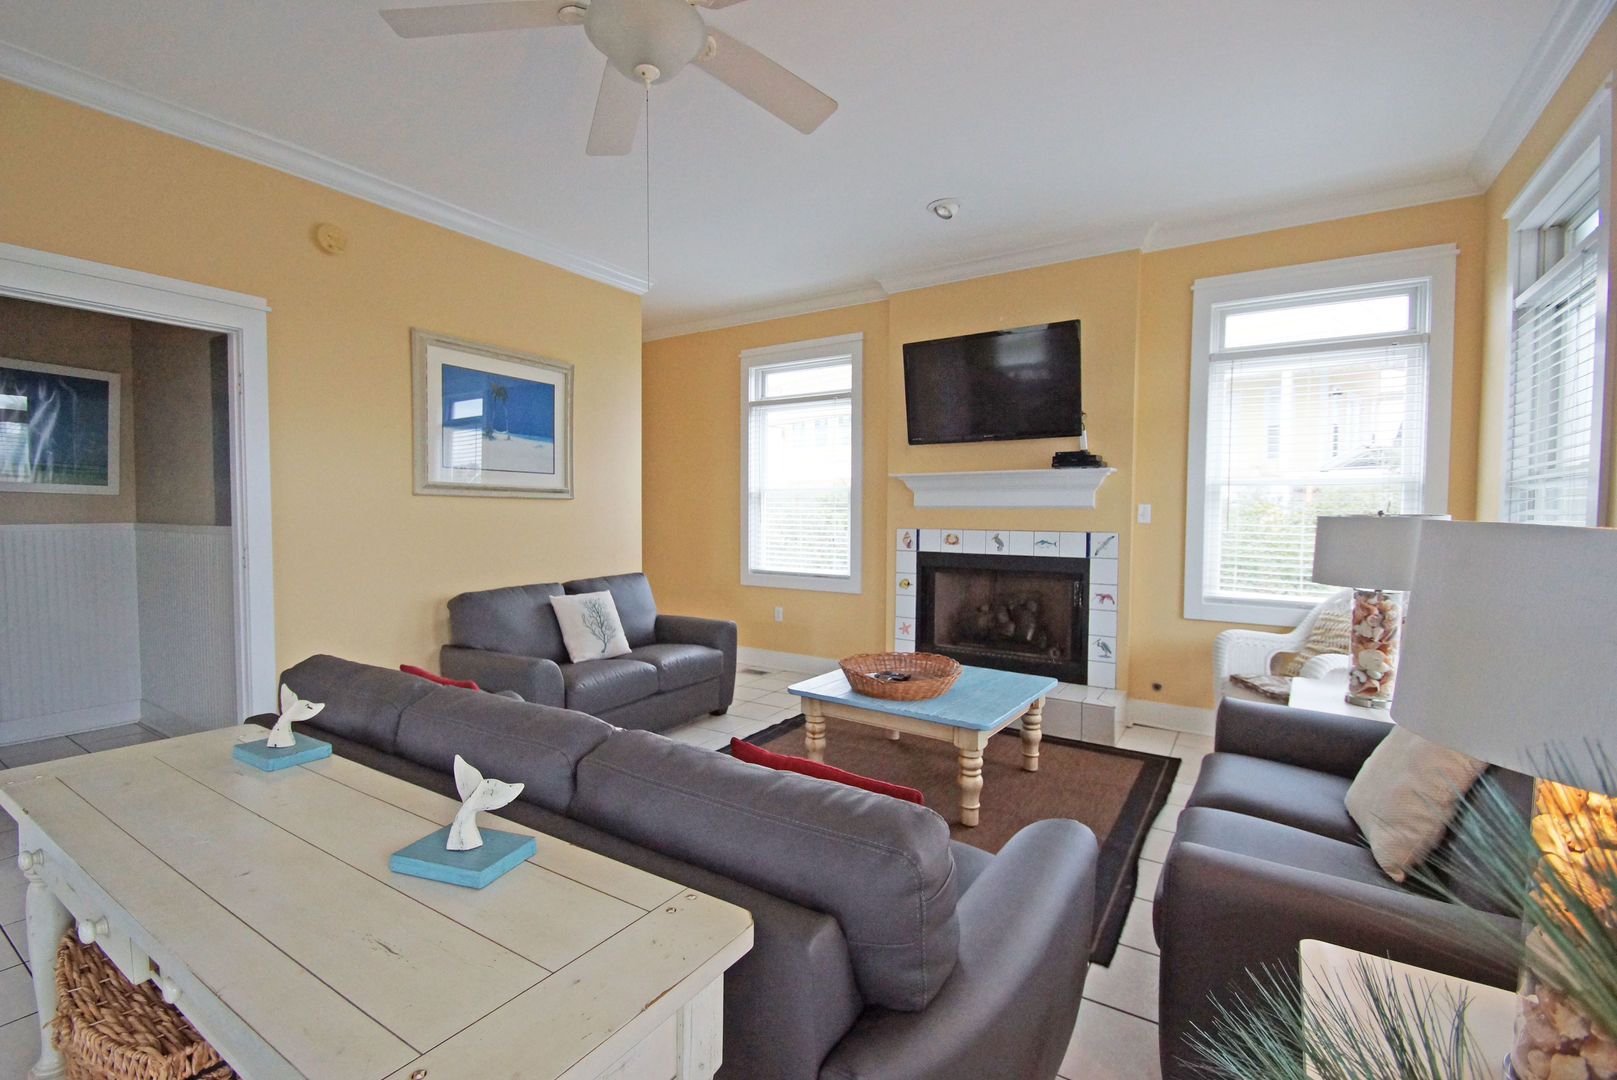 Living Area with Sofas, Coffee Table, Fireplace, and TV.